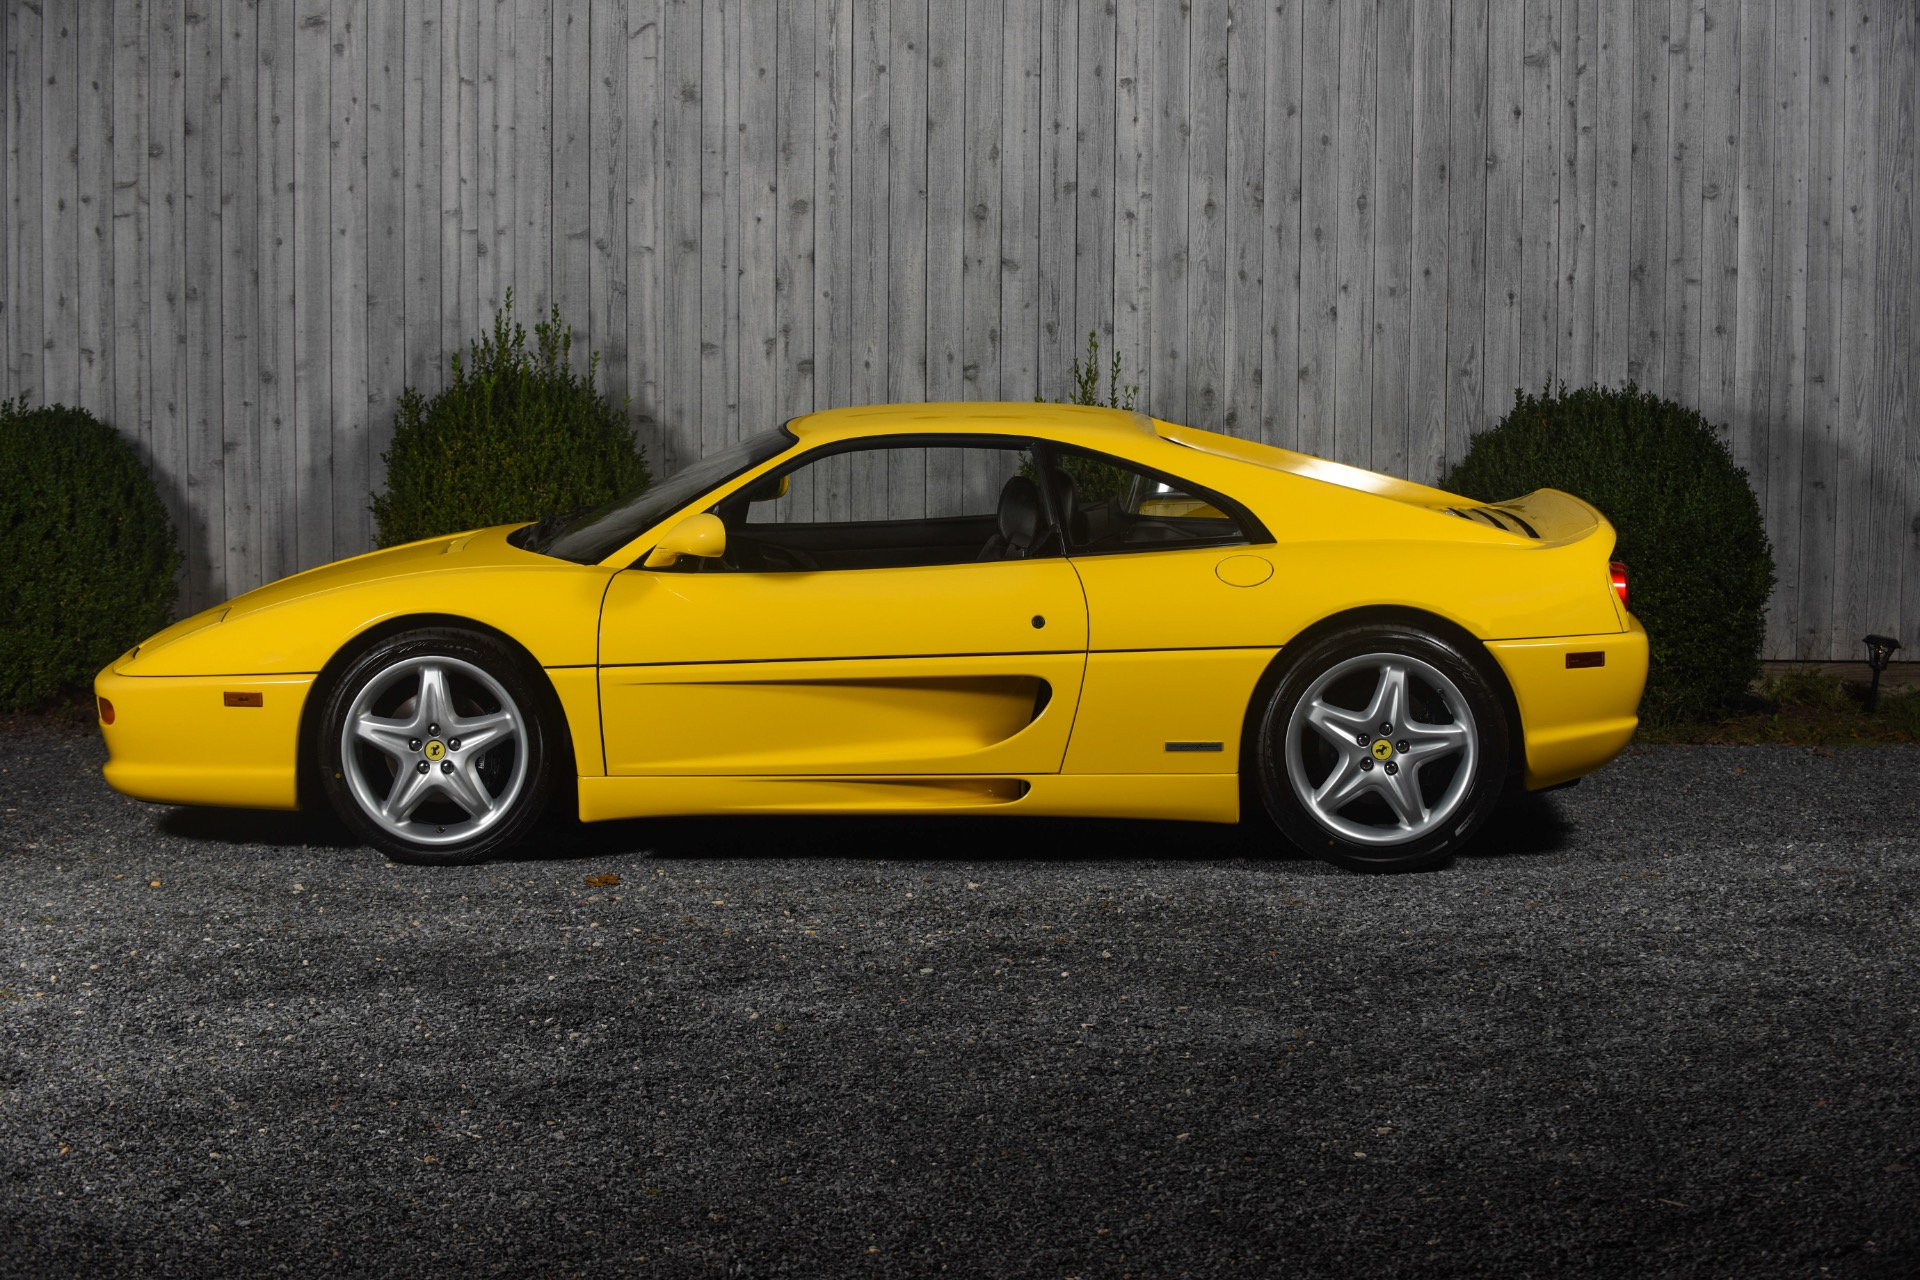 1996 ferrari f355 stock # 51 for sale near valley stream, ny | ny